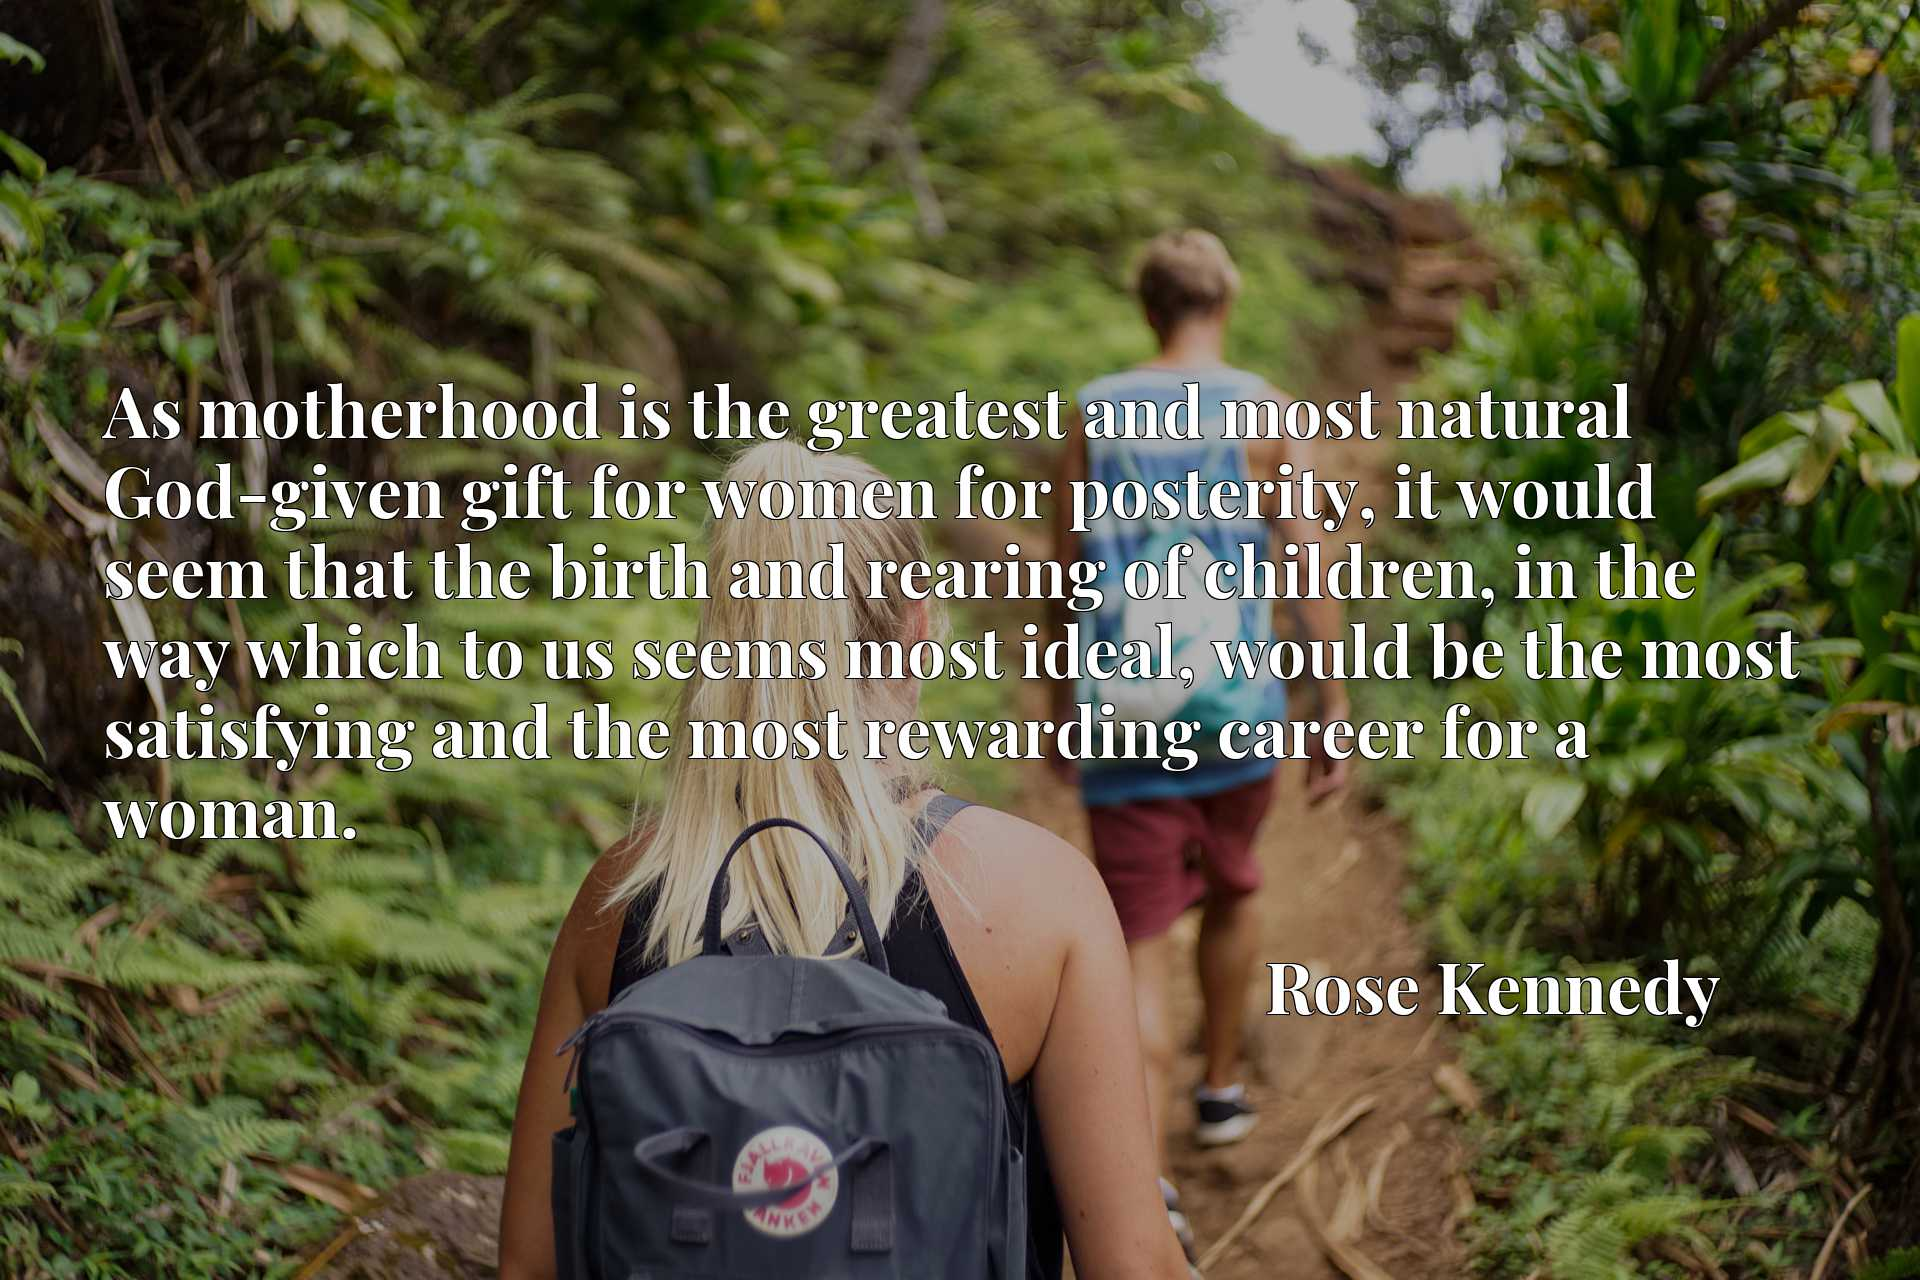 As motherhood is the greatest and most natural God-given gift for women for posterity, it would seem that the birth and rearing of children, in the way which to us seems most ideal, would be the most satisfying and the most rewarding career for a woman.